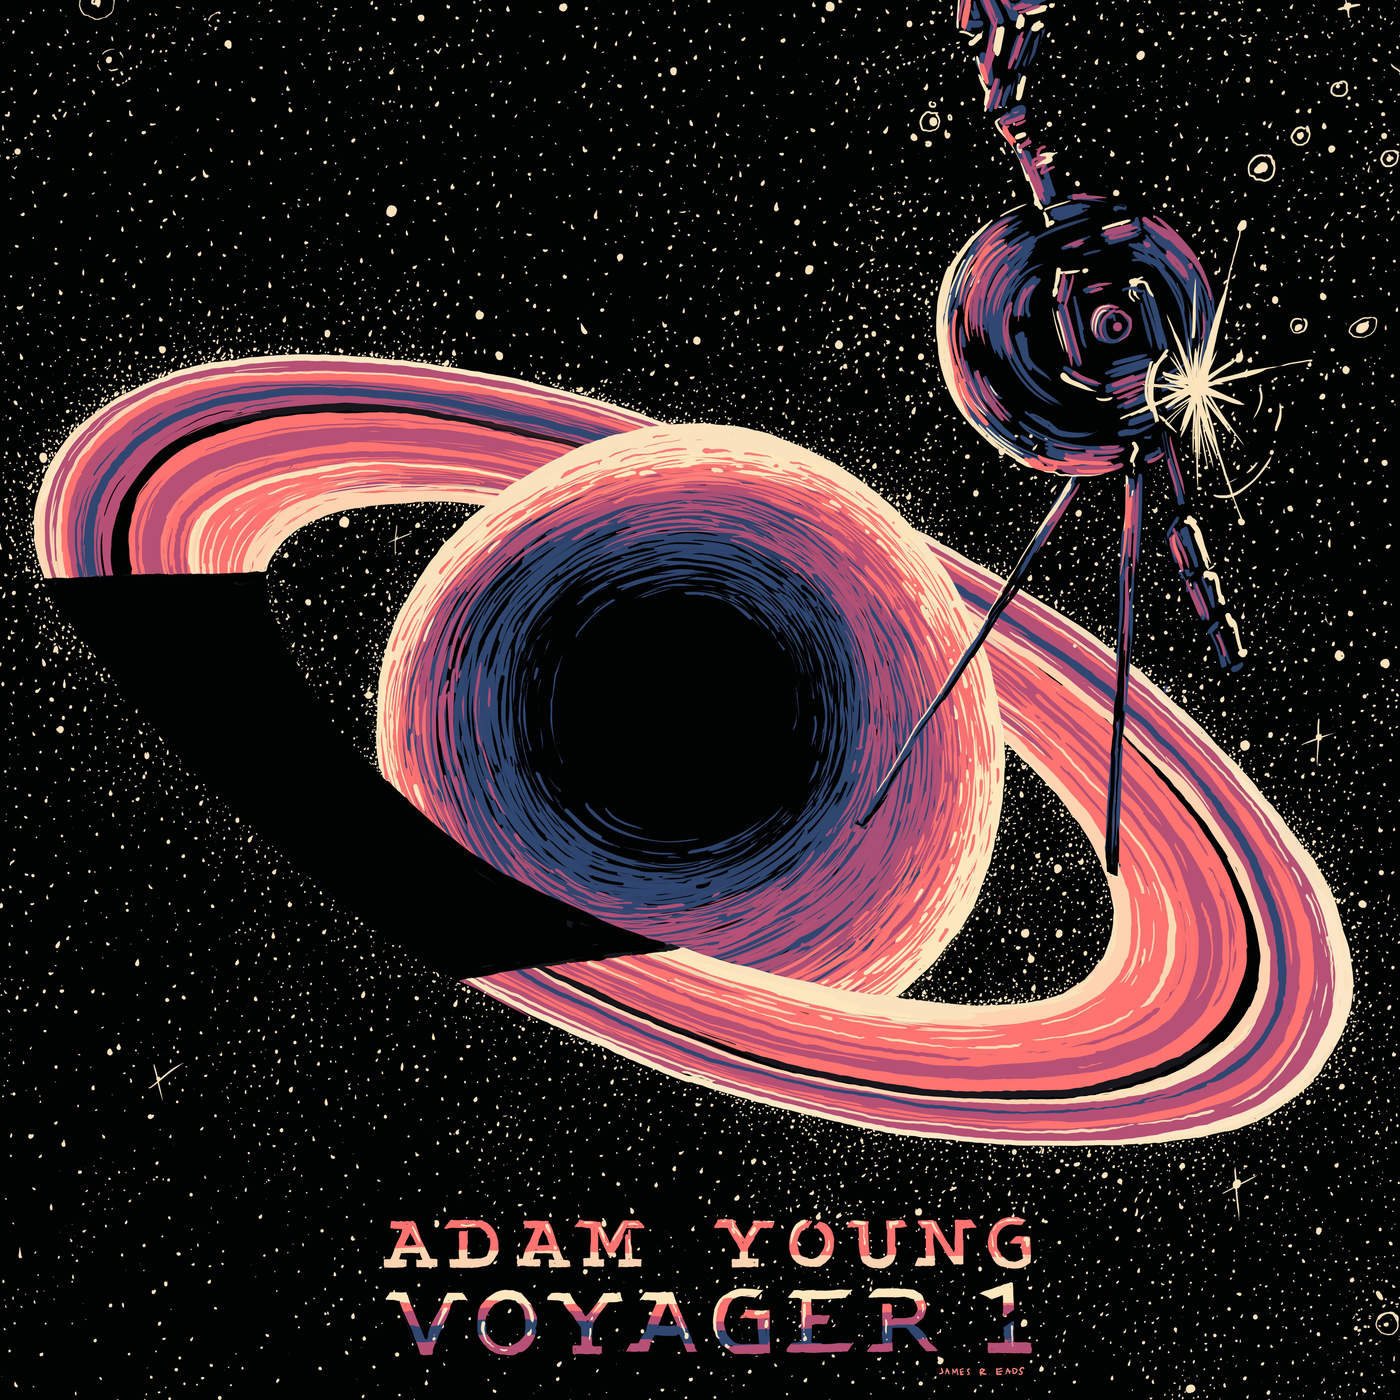 Adam Young Scores 10月新作《Voyager 1》!